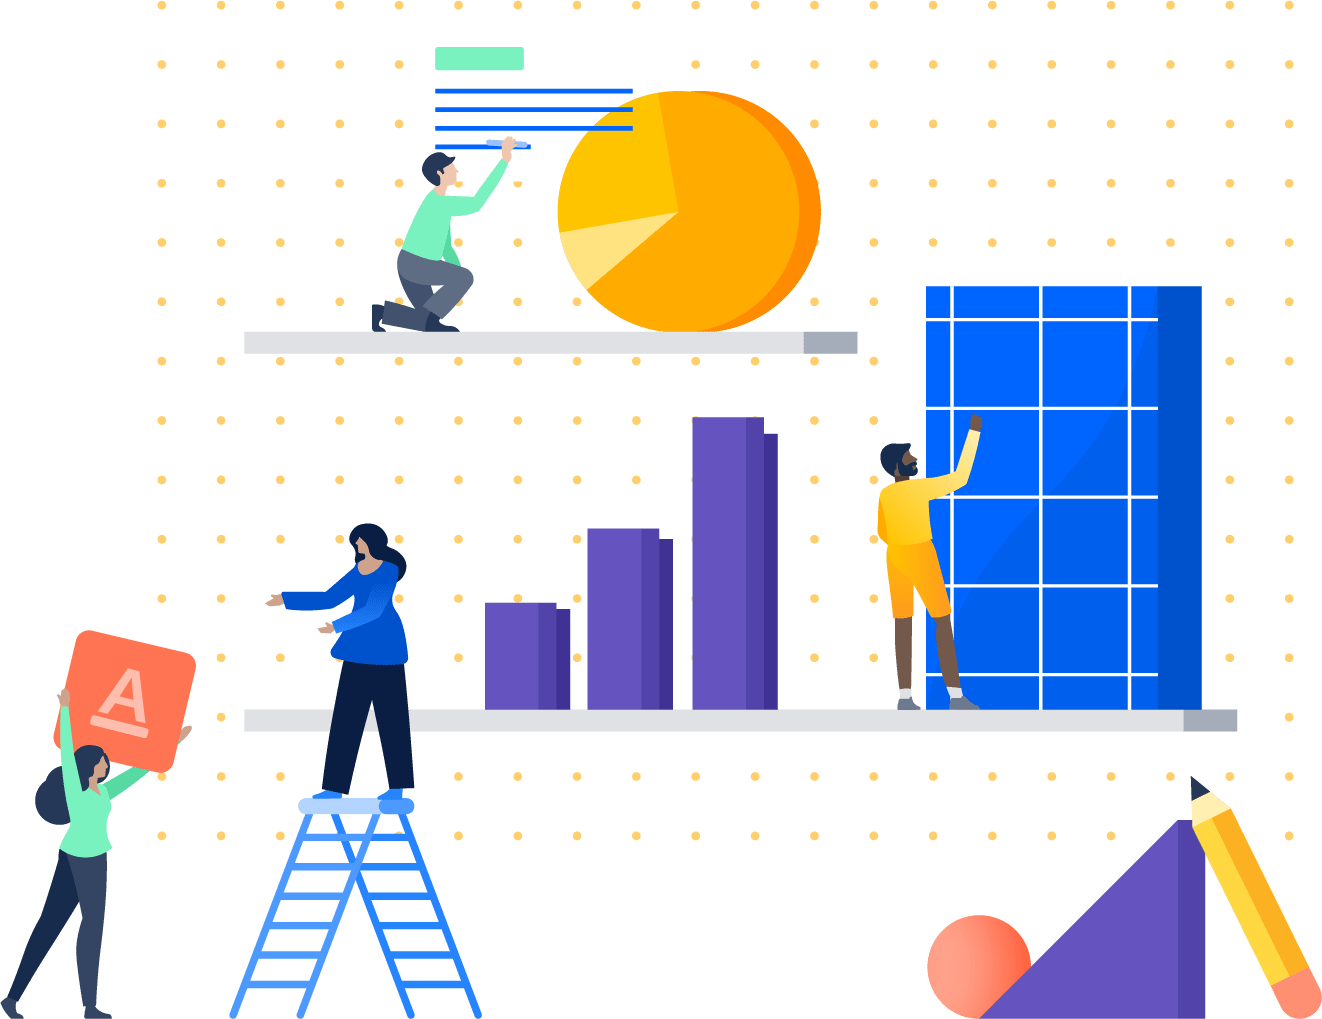 Illustration of people stacking objects on a shelf